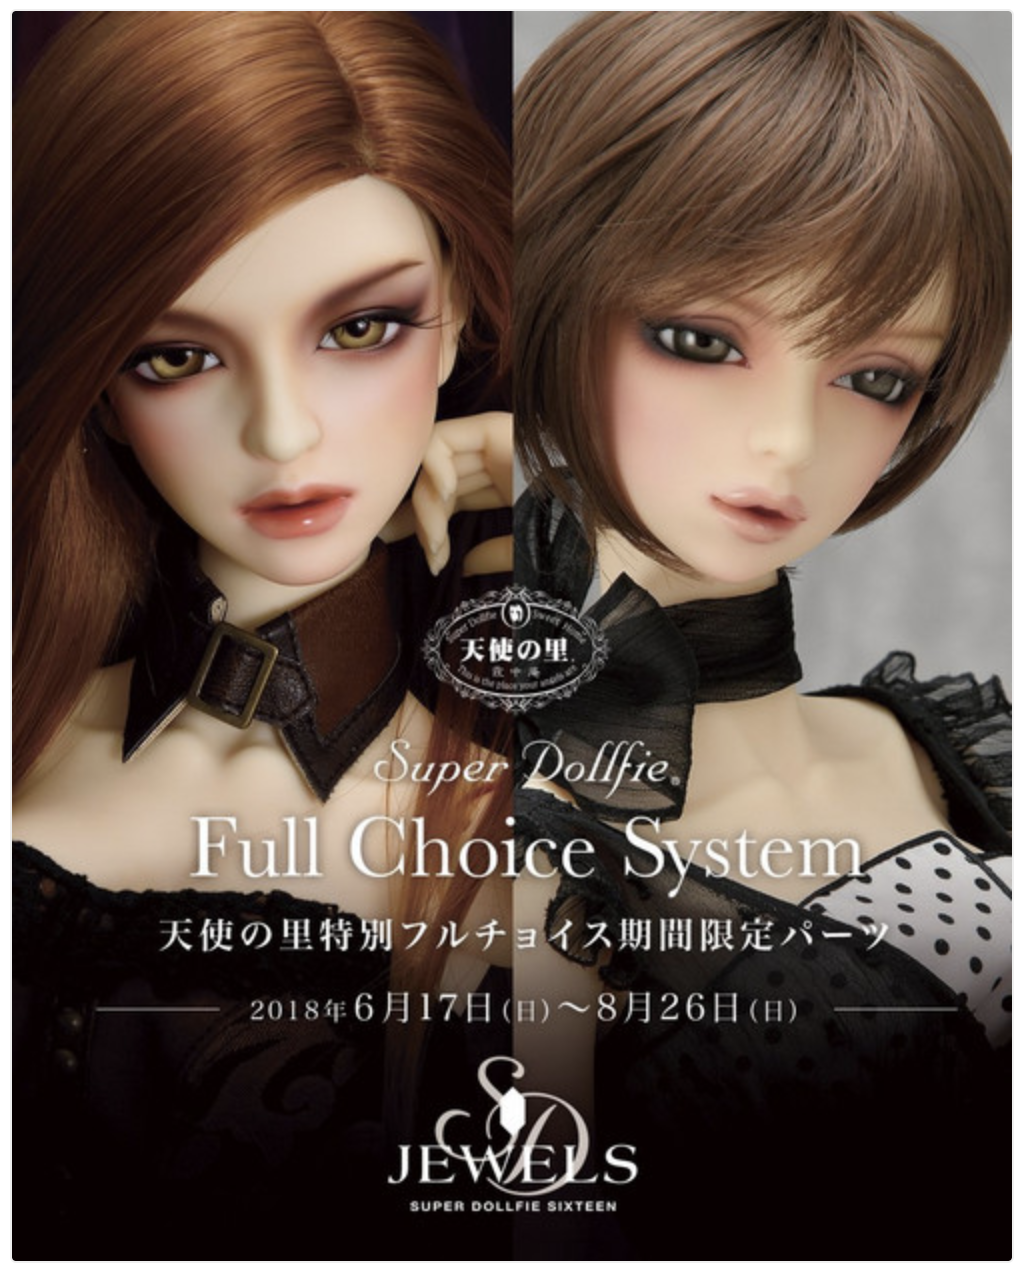 ALL IMAGES ARE PROPERTY OF VOLKS INC